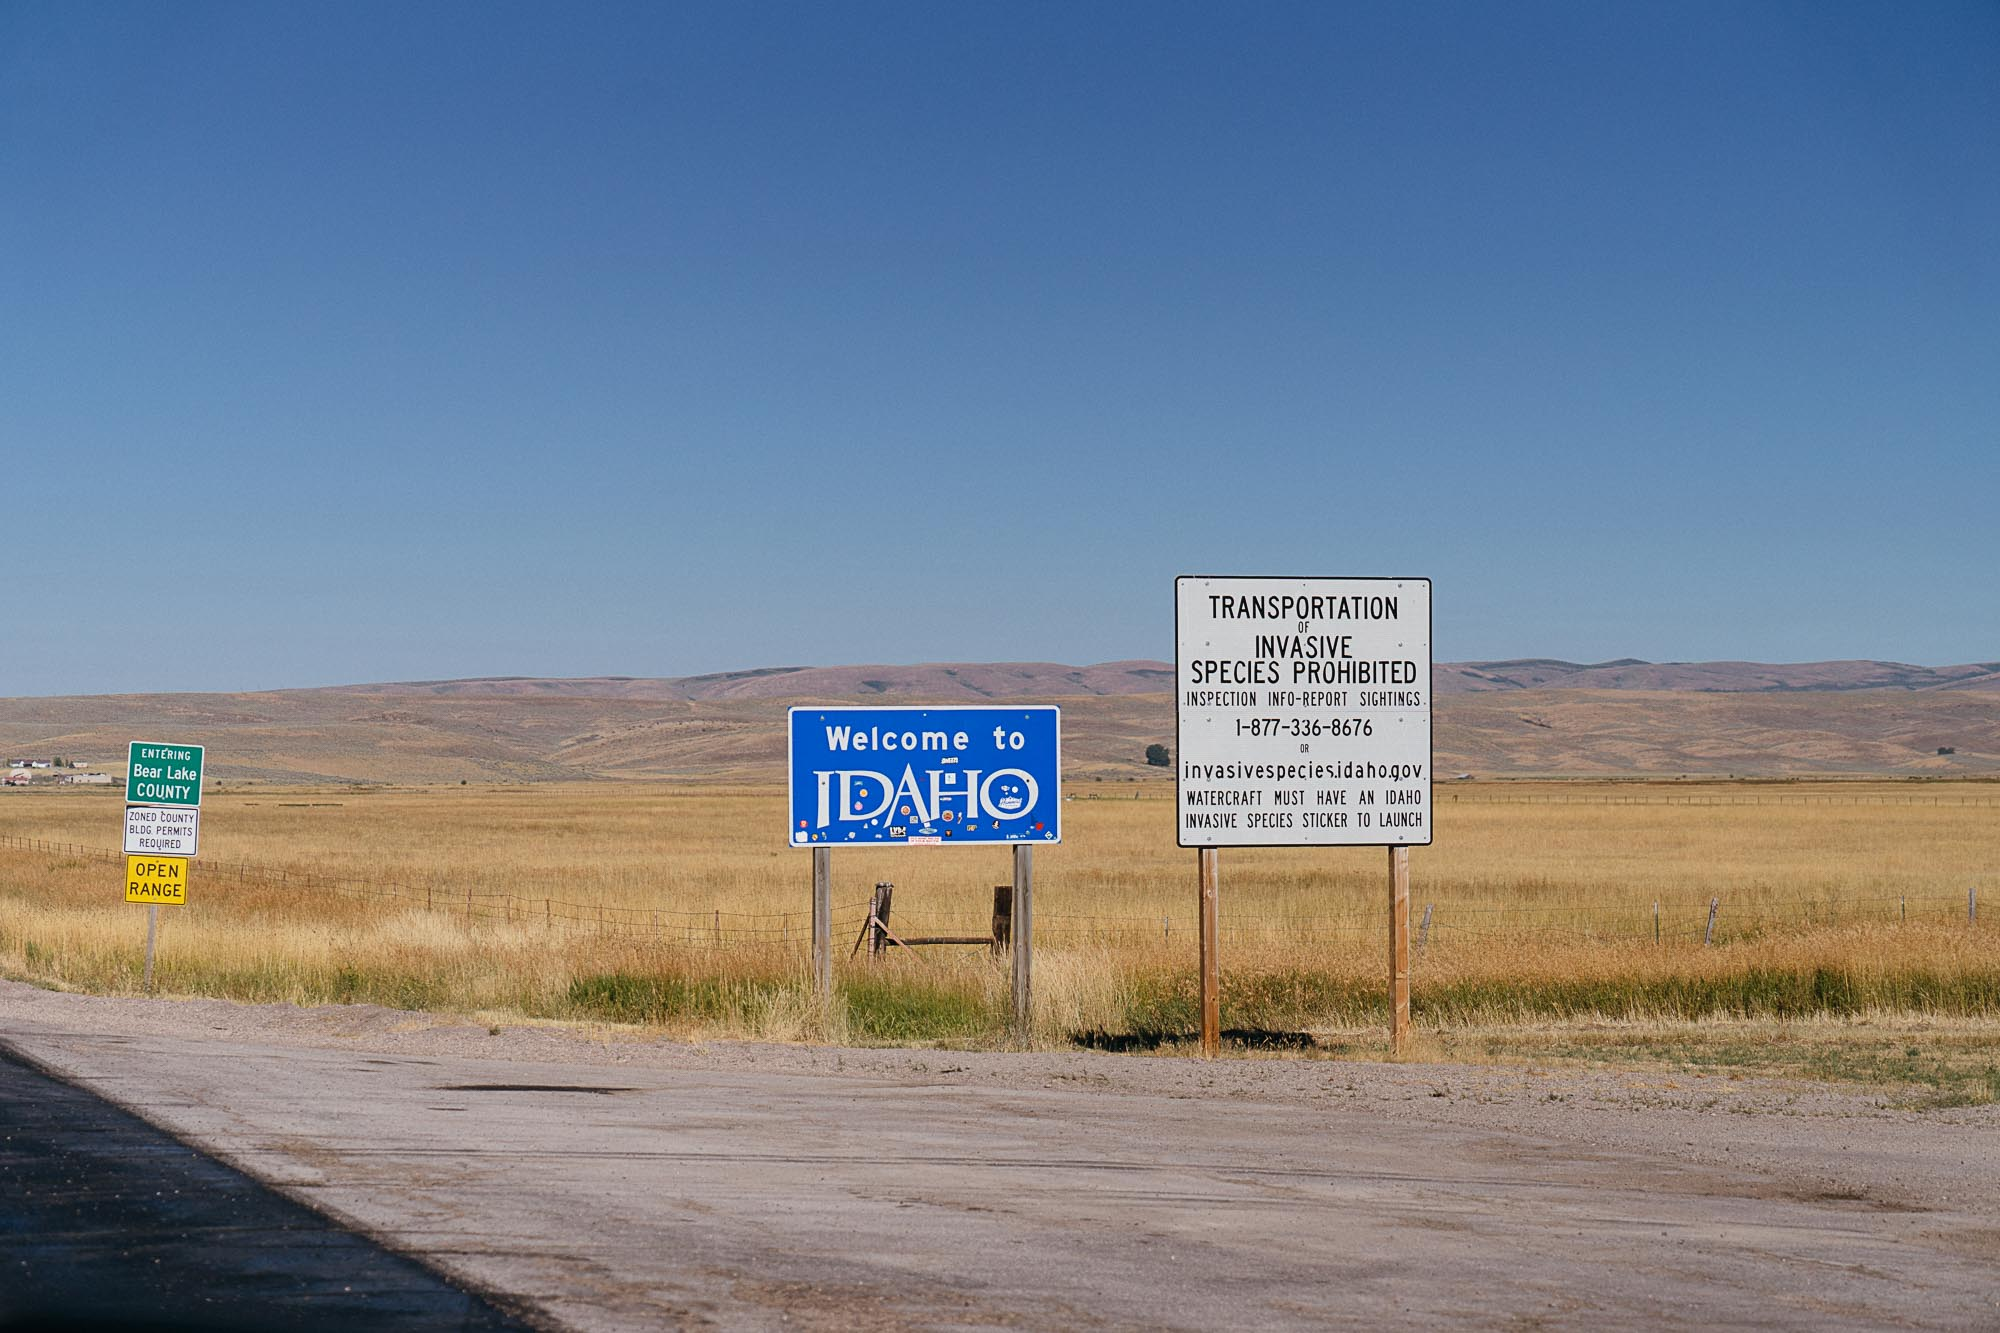 The 'Wecome to Idaho' sign, coming into the state from Cokeville, Wyoming.